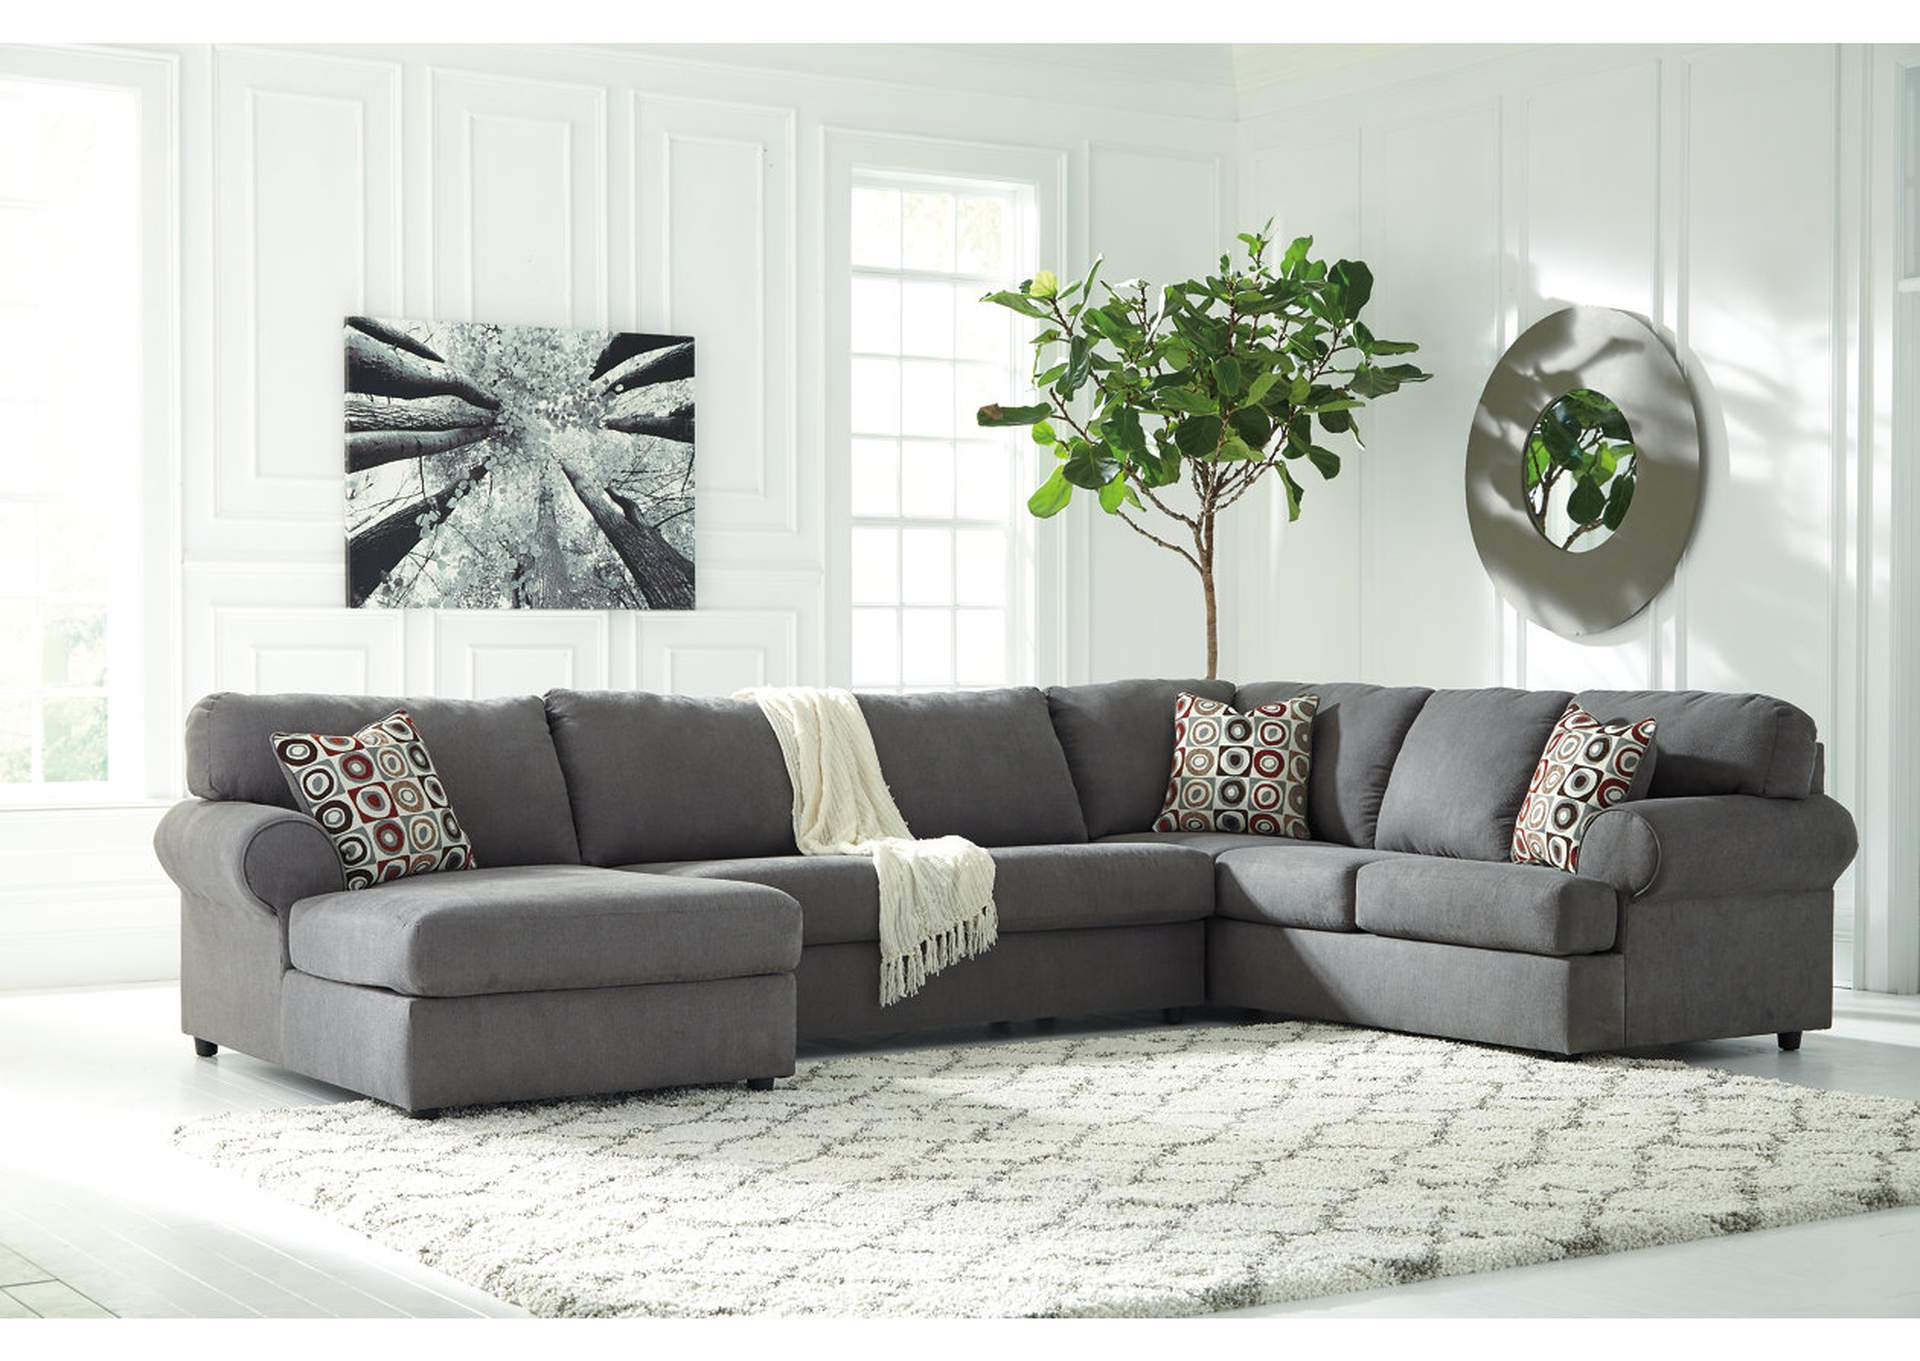 High Point Sofa Factory - Florence, Sc Jayceon Steel Extended Left